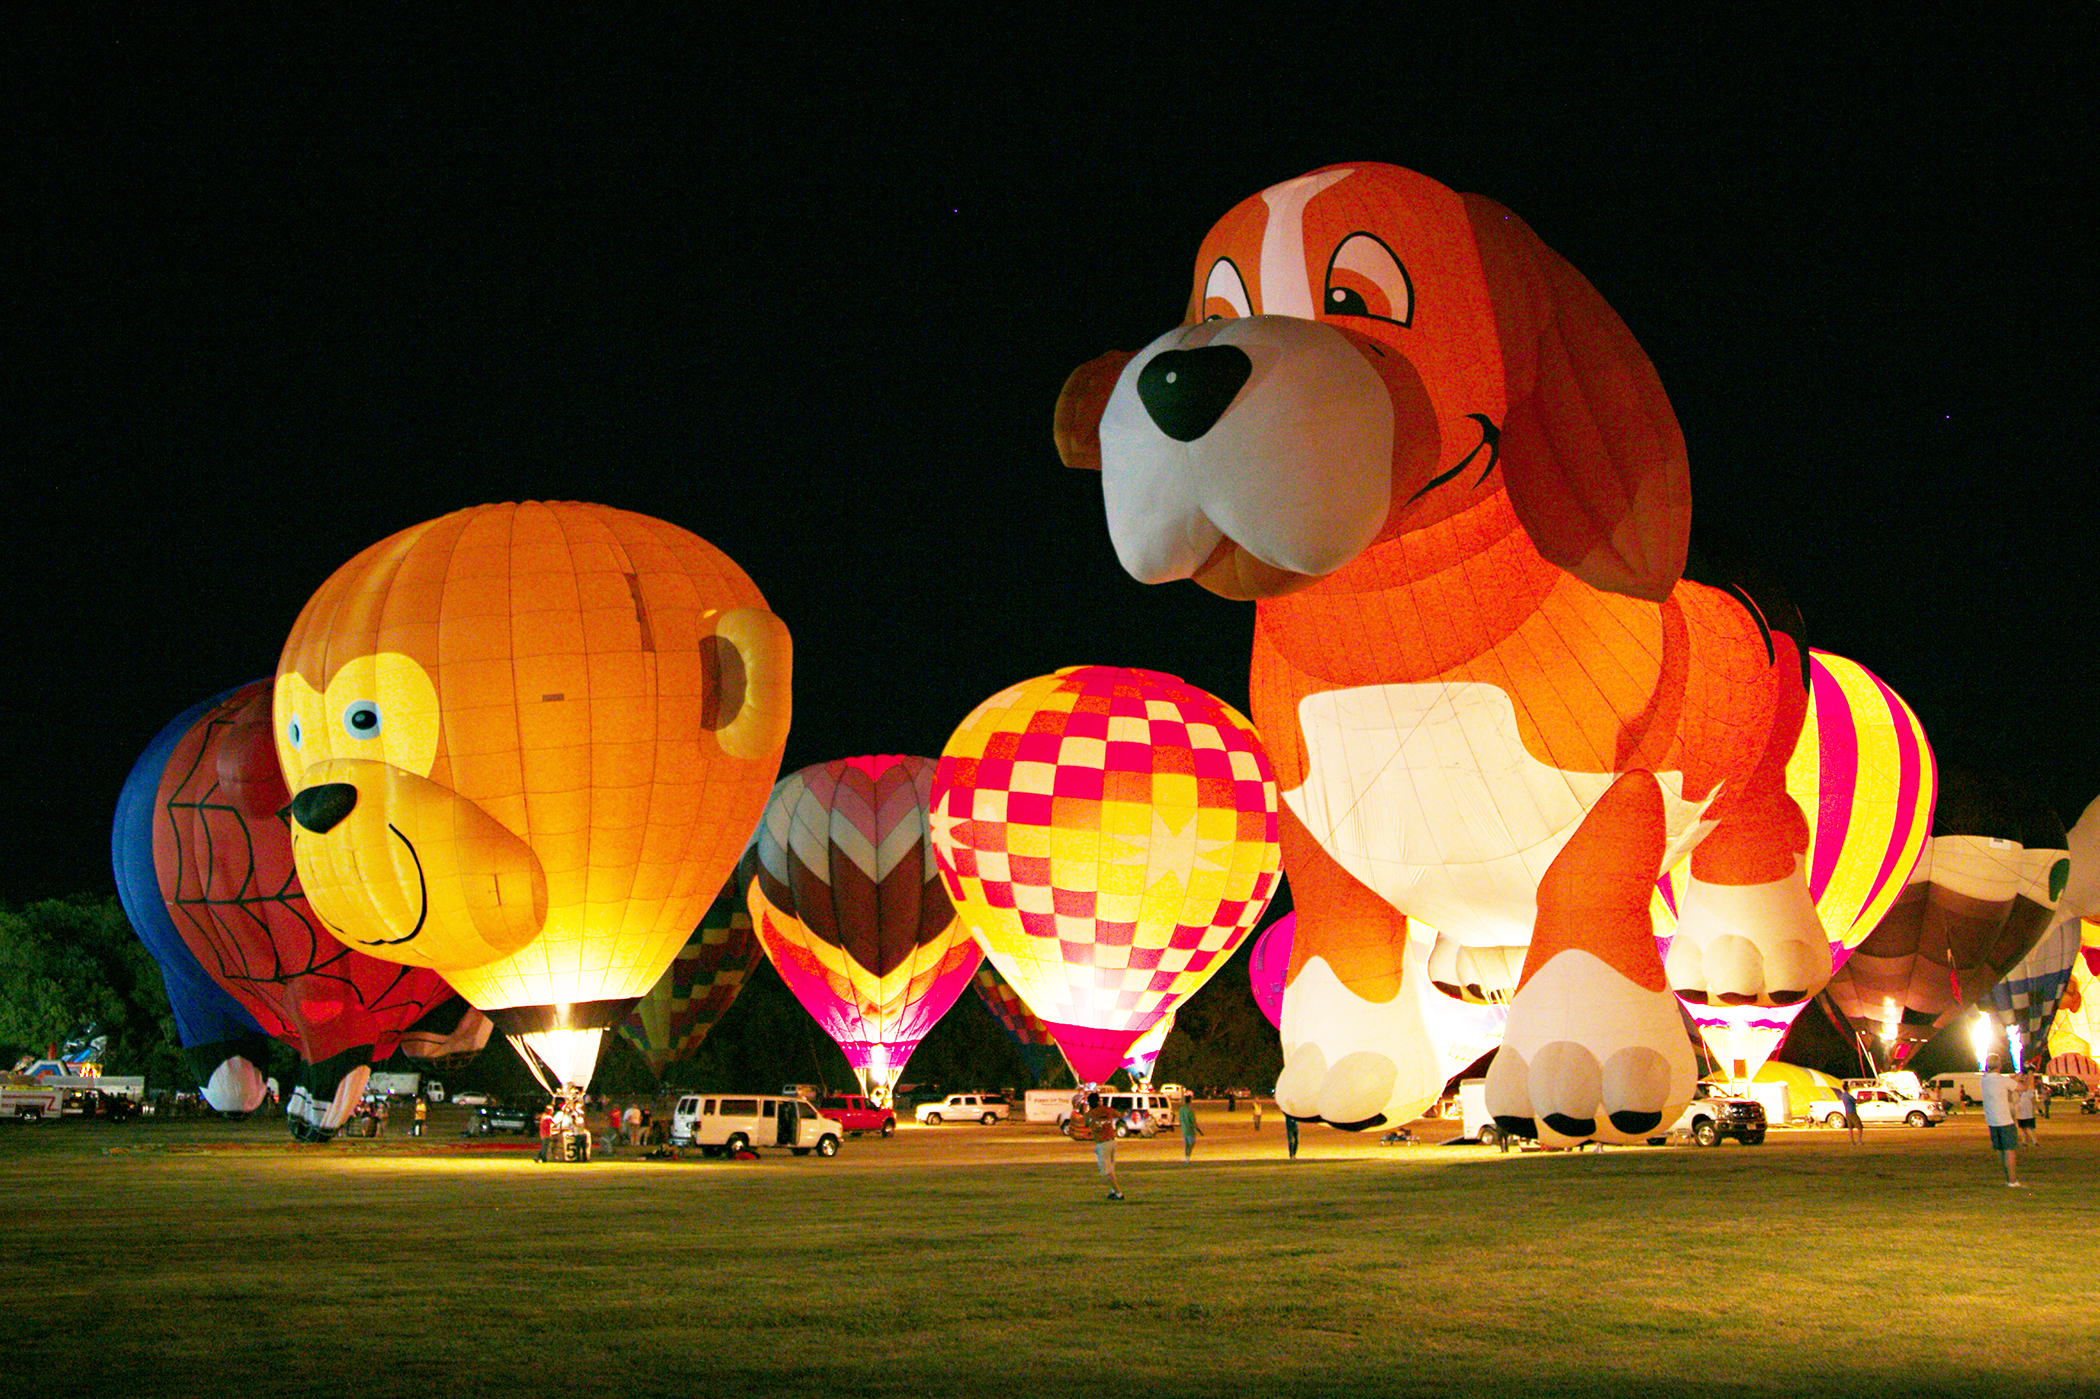 Plano, Texas.  The Plano Balloon Festival has become a signature annual event every fall. The rest of the year, Plano is known for making good on its motto— A great place to do business,  which has helped draw companies including J.C. Penney, Frito-Lay, and Bank of America to town.